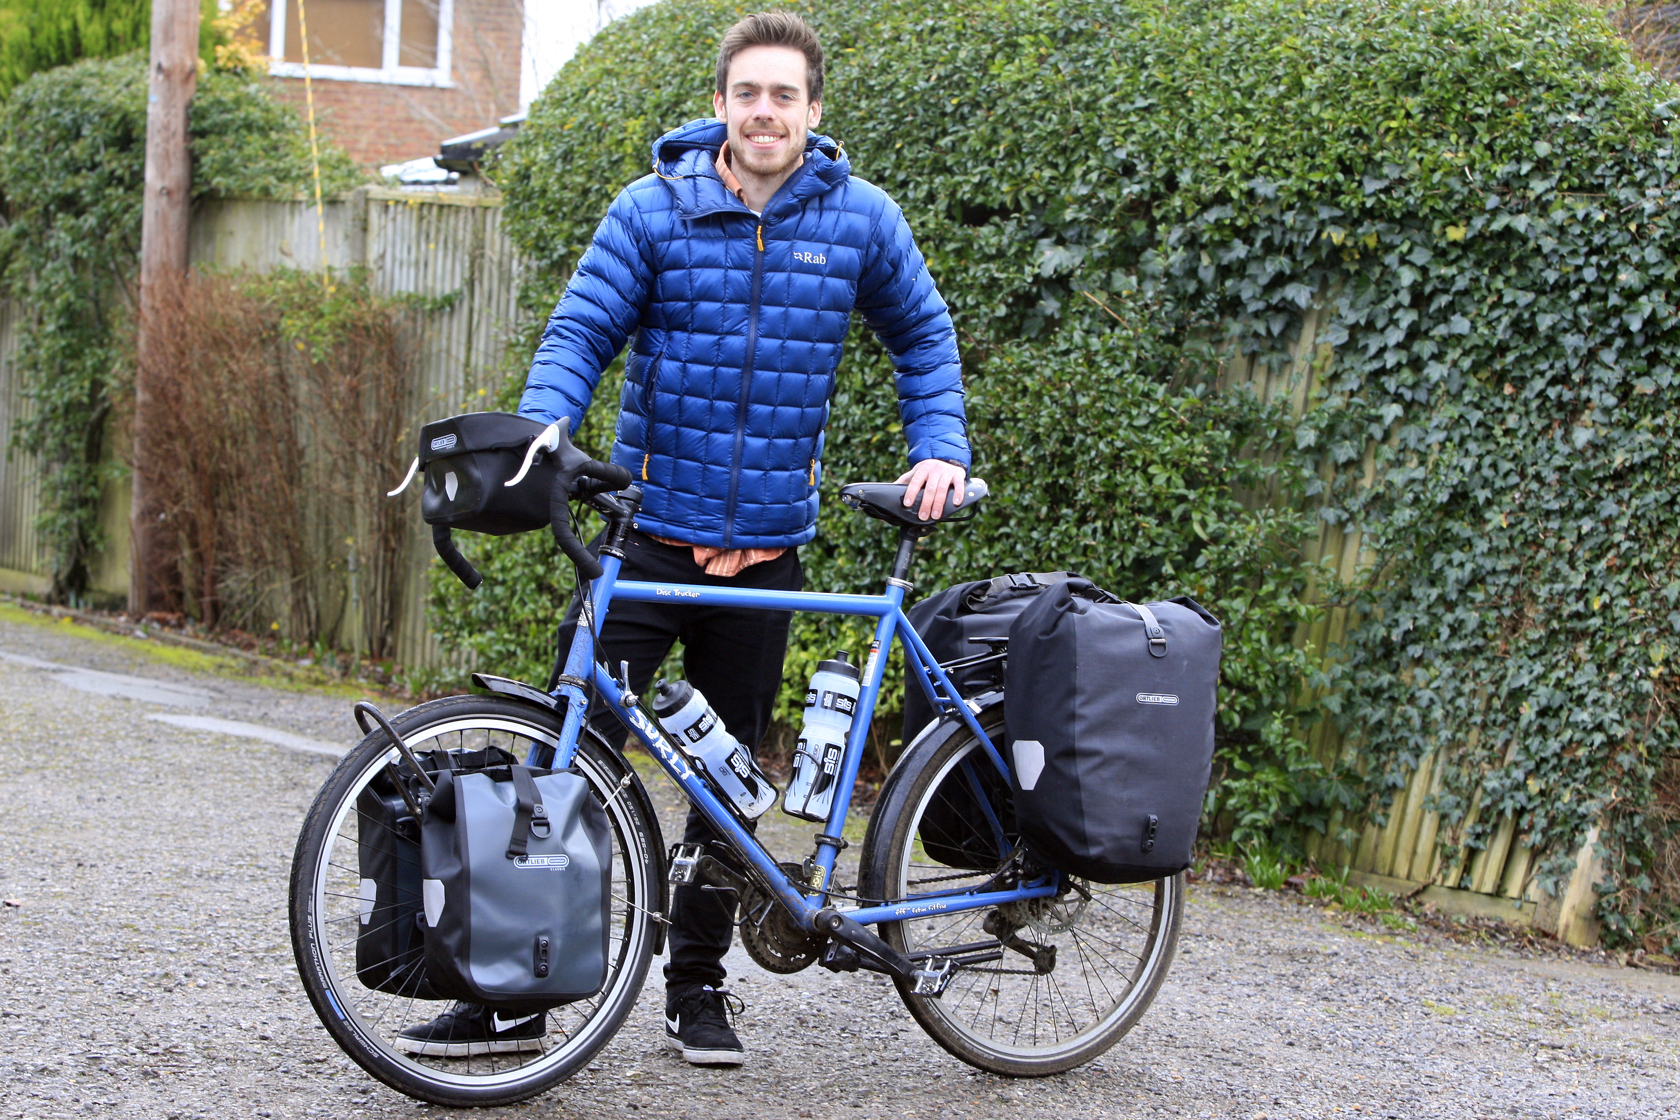 Cyclist set to take on 'once-in-a-lifetime' bike ride around the world